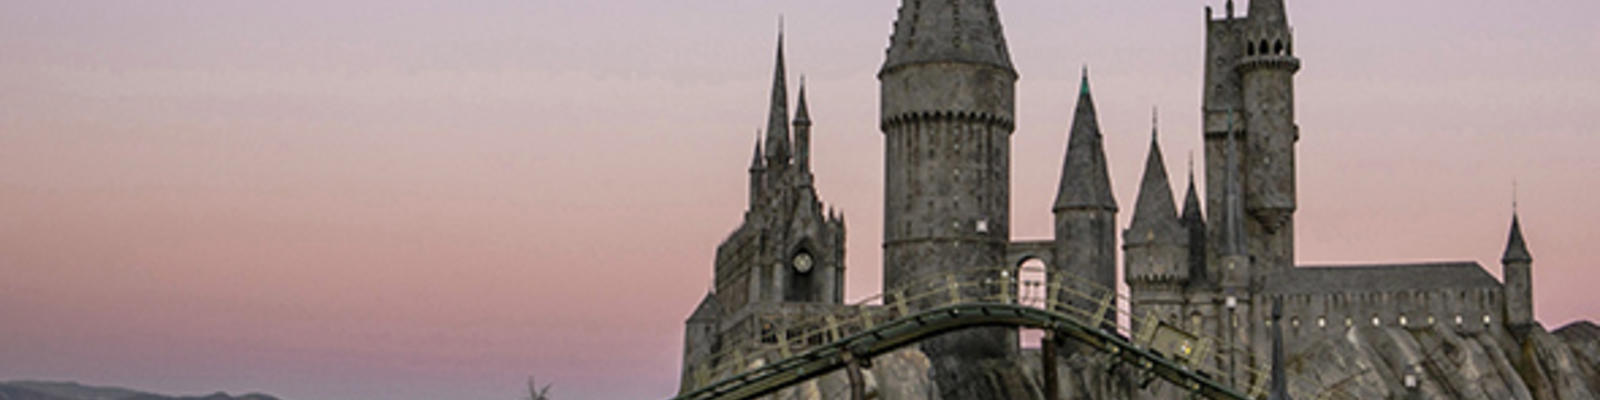 15 Harry Potter Essentials Muggles Need For Visiting The ...